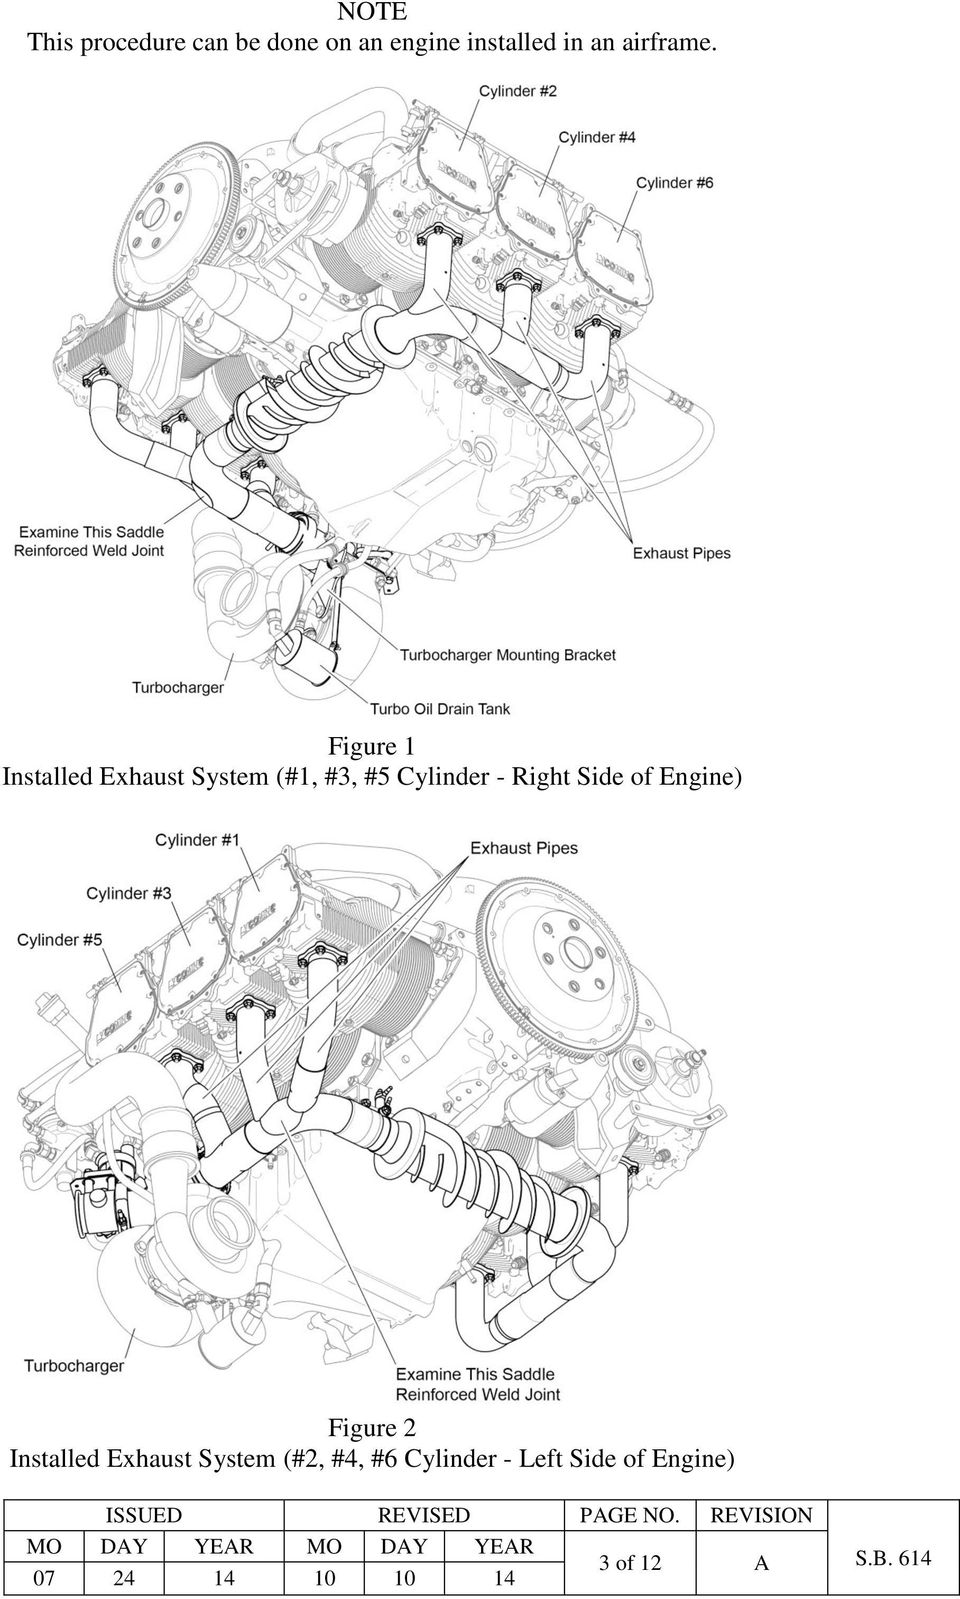 Mandatory Service Bulletin Pdf Buell Rotax Engine Diagram Figure 1 Installed Exhaust System 3 5 Cylinder